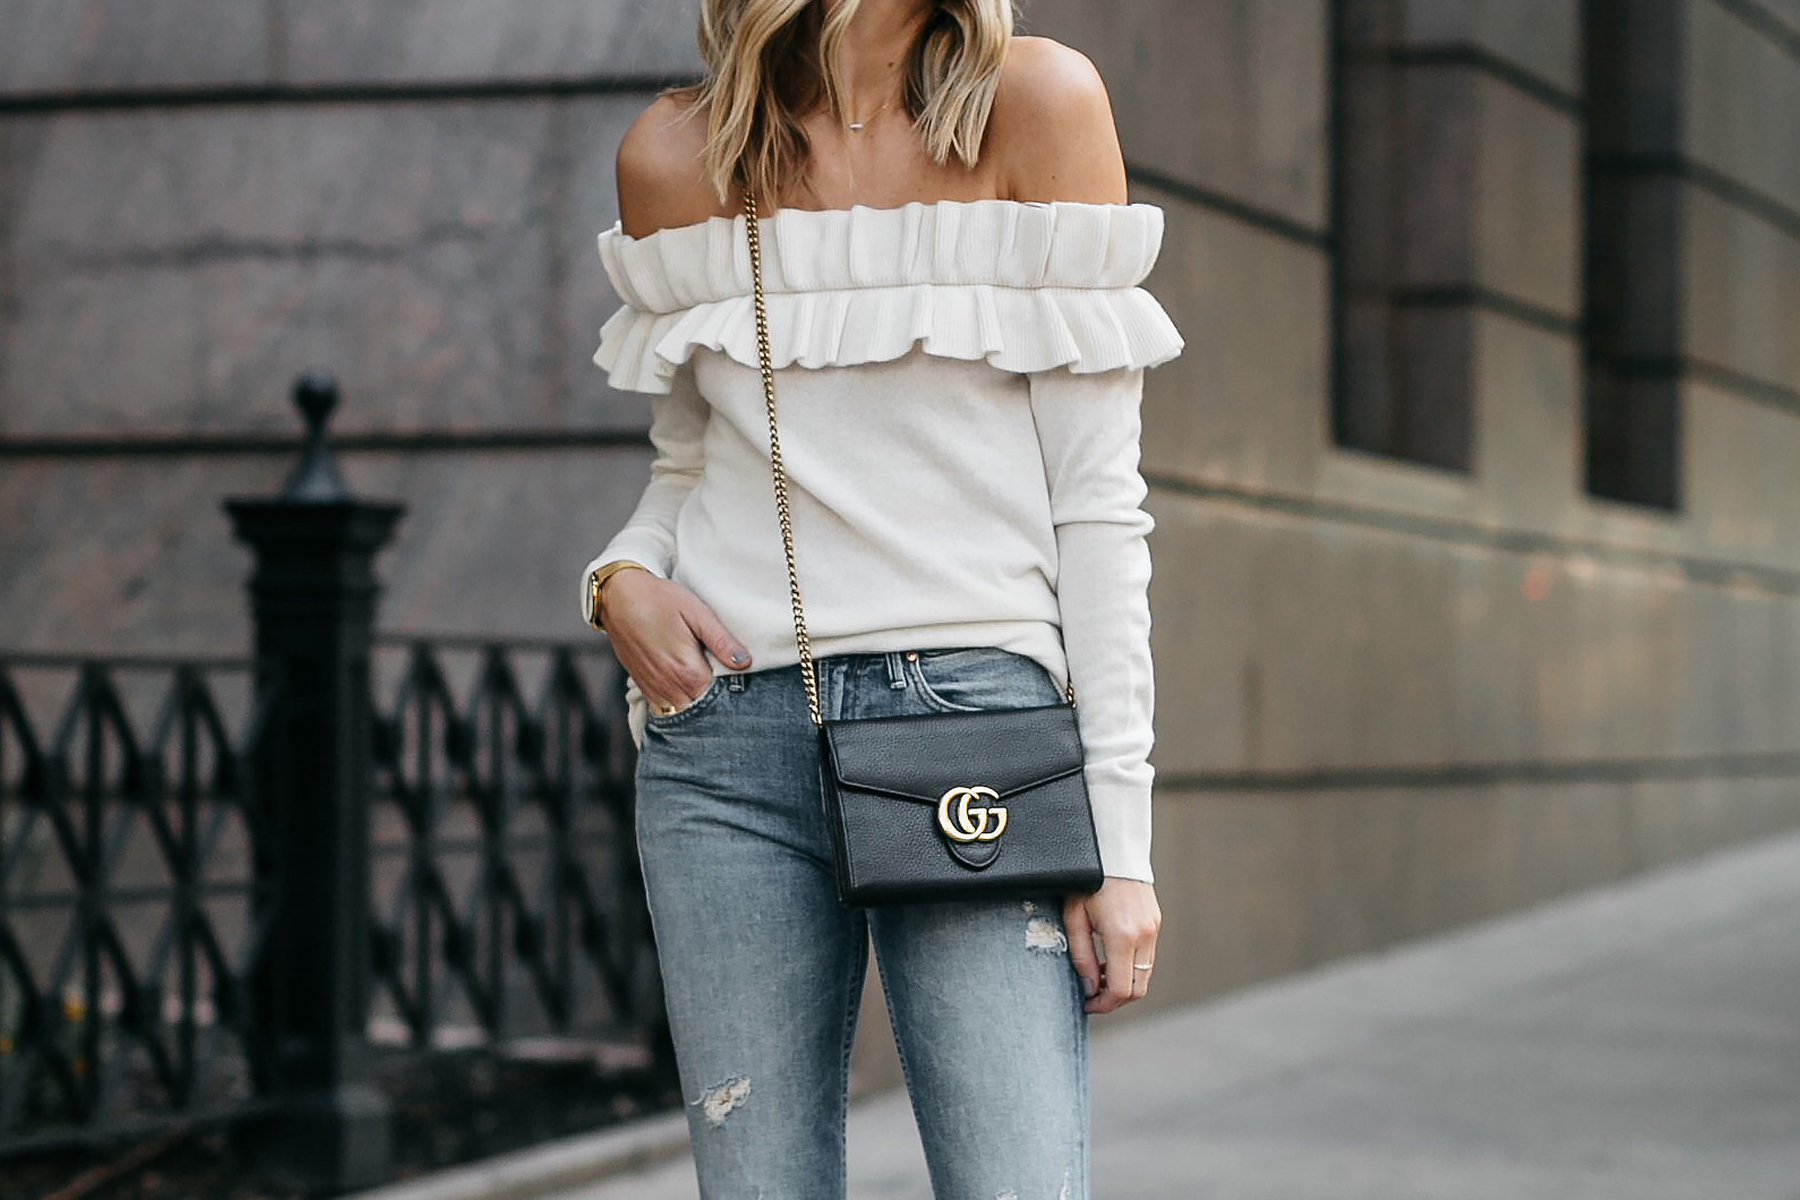 Club Monaco Ruffle Off-the-Shoulder Sweater Gucci Marmont Handbag Fashion Jackson Dallas Blogger Fashion Blogger Street Style